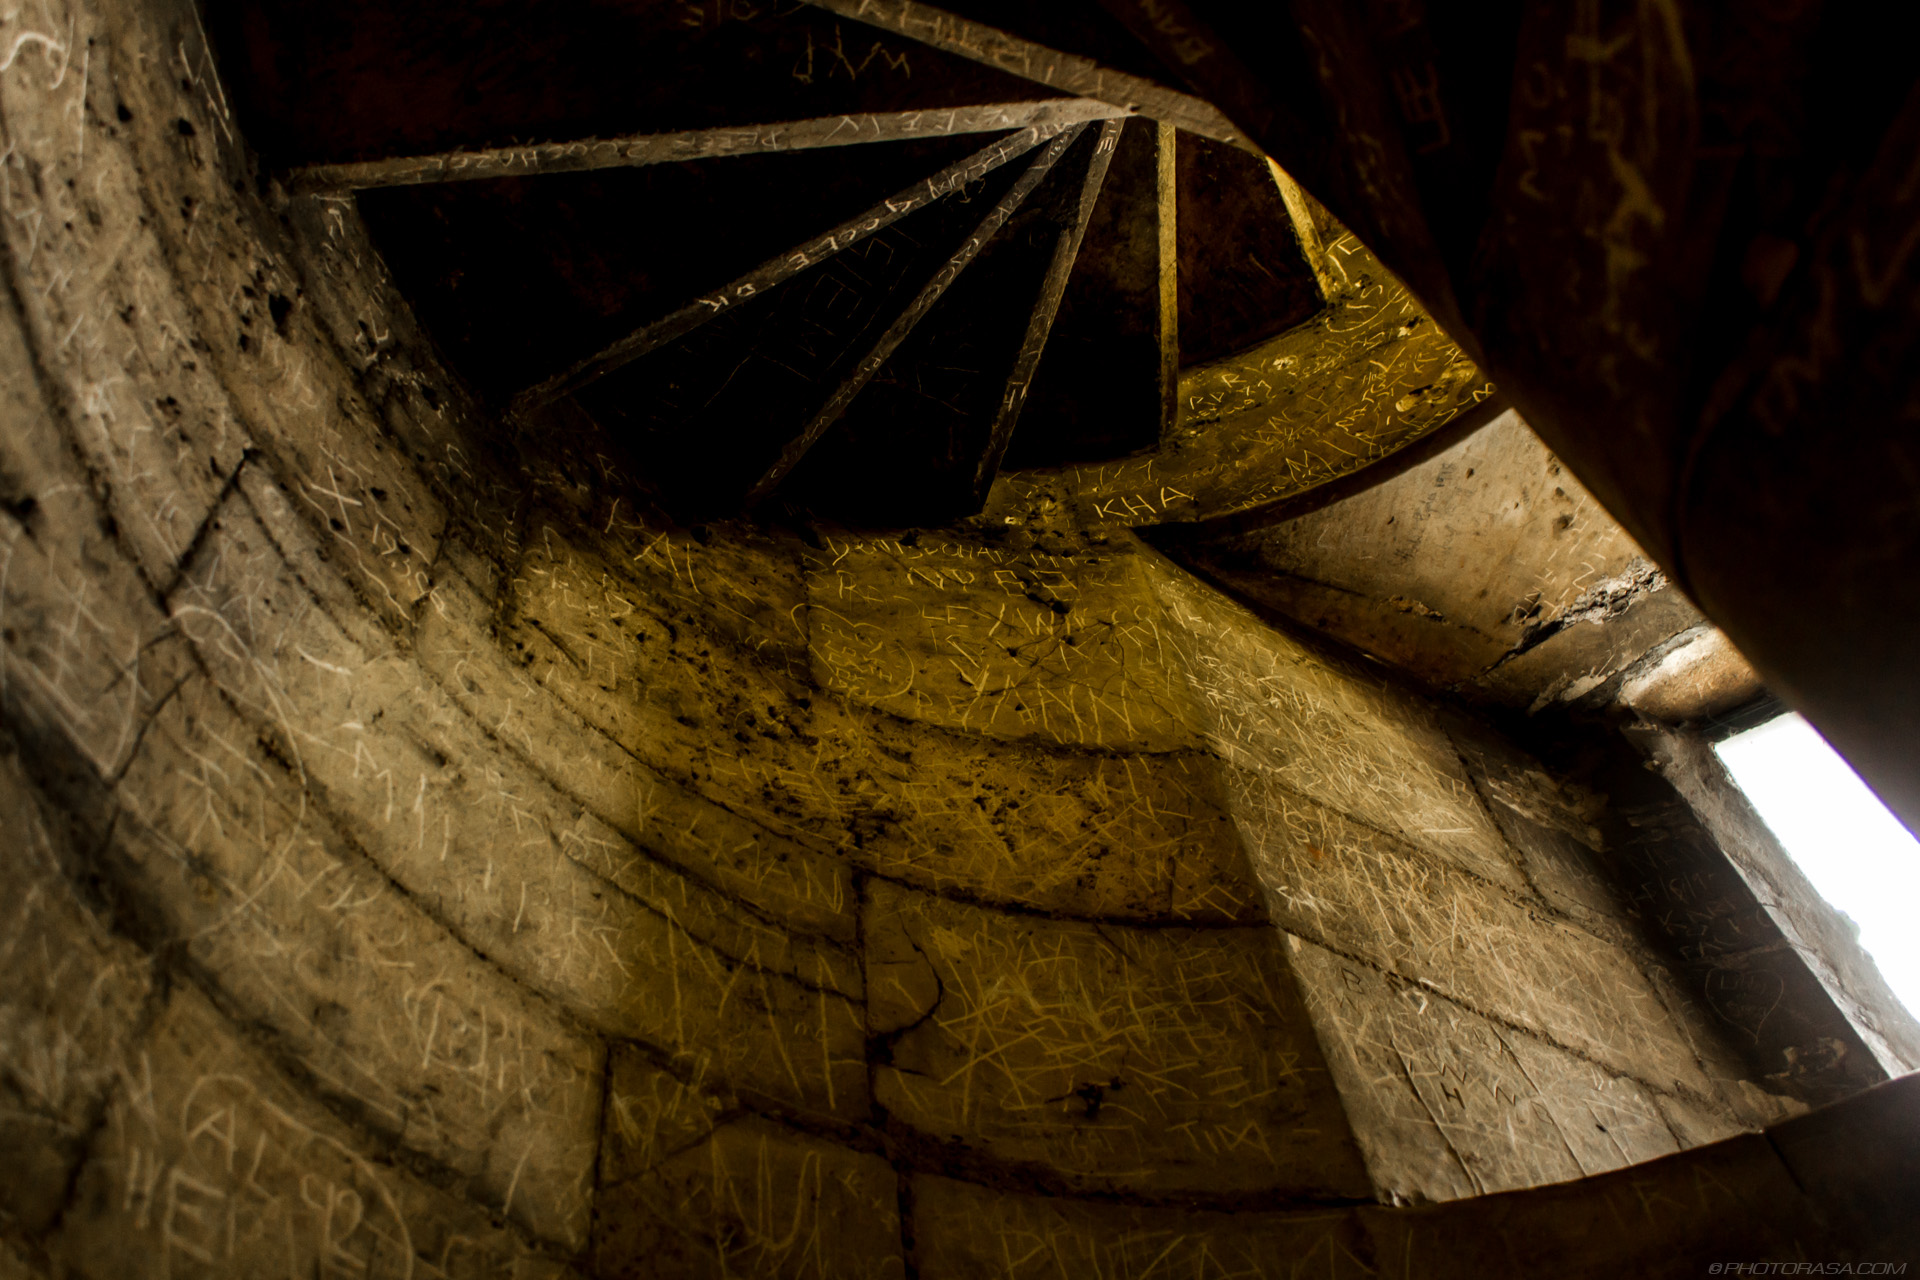 http://photorasa.com/yorkminster-cathedral/walls-of-graffiti-on-spiral-stone-steps/